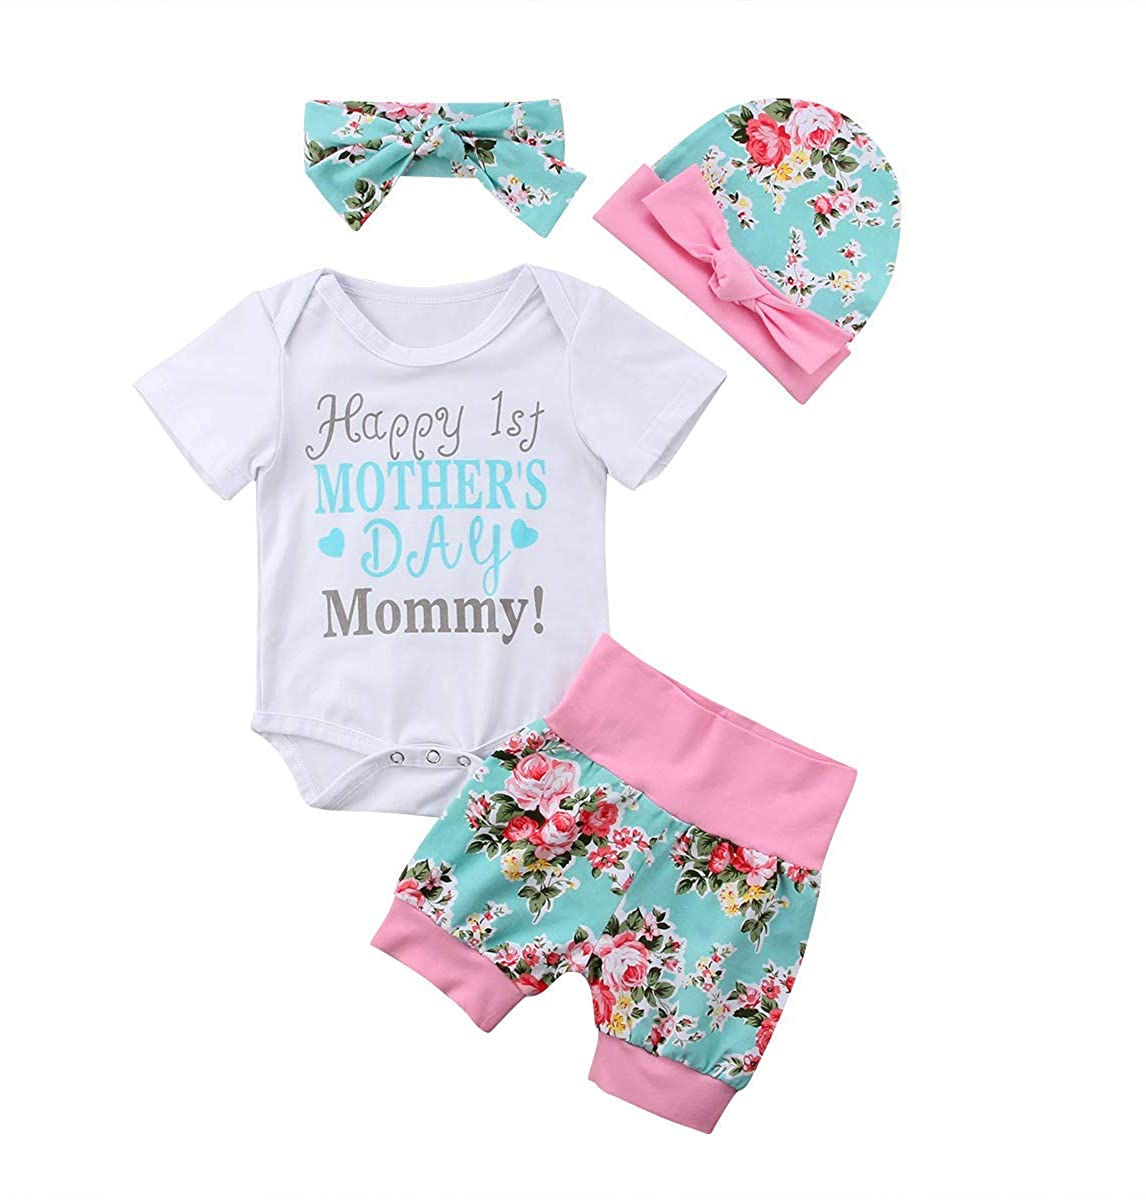 SWNONE 3PCS Short Set Baby Girls Happy 1st Mother's Day Romper Bowknot Hat Short Pant Mommy's Day Cute Clothes Set